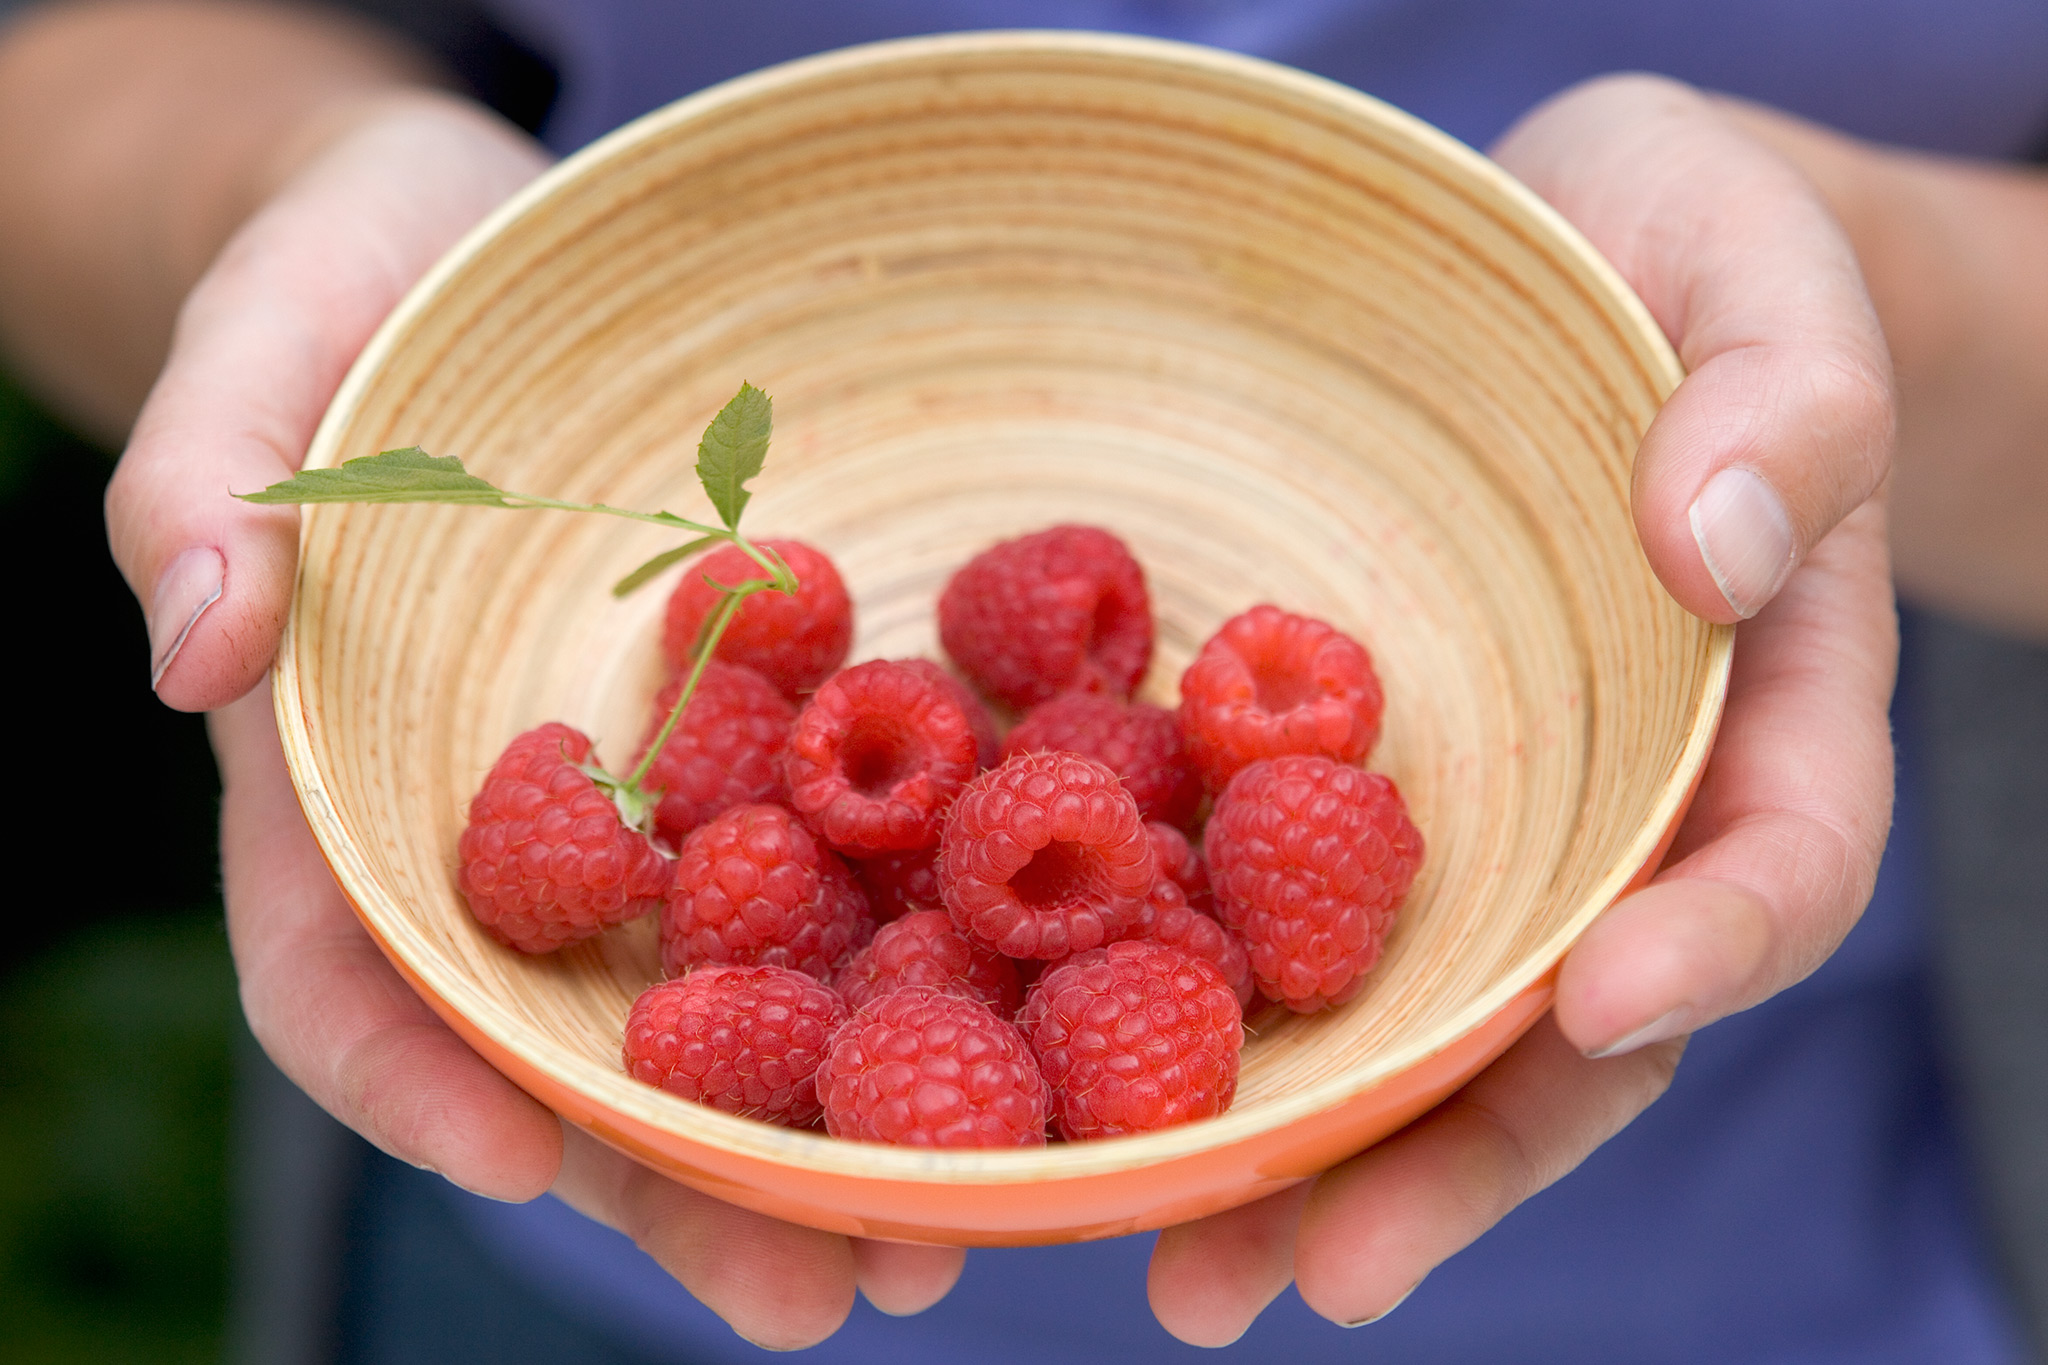 Raspberries: How to Plant, Grow, and Harvest Raspberries ...